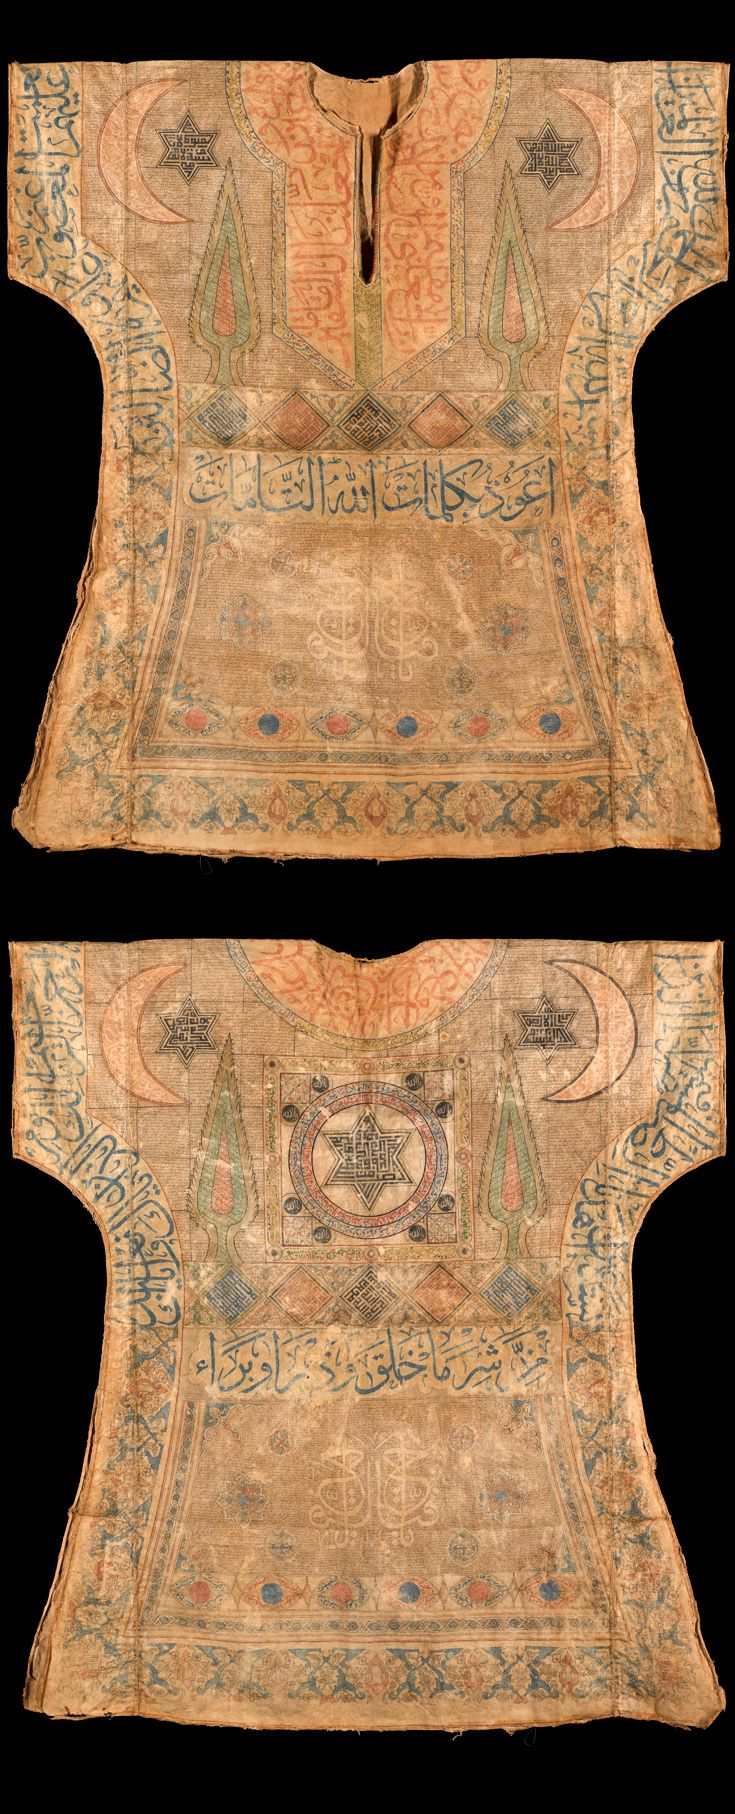 An Ottoman talismanic cotton shirt (Jama) covered with text written in a variety of scripts, including Muhaqqaq, Naskh, Ghubar, Thuluth and square Kufic, in assorted colours, arranged in numerous panels, roundels, cartouches, crescent moons, stars and cypress tree forms, the lower section with musenna-form calligraphy reserved in Thuluth script, with interstices and borders comprising interlacing foliate motifs | Turkey, 16th century